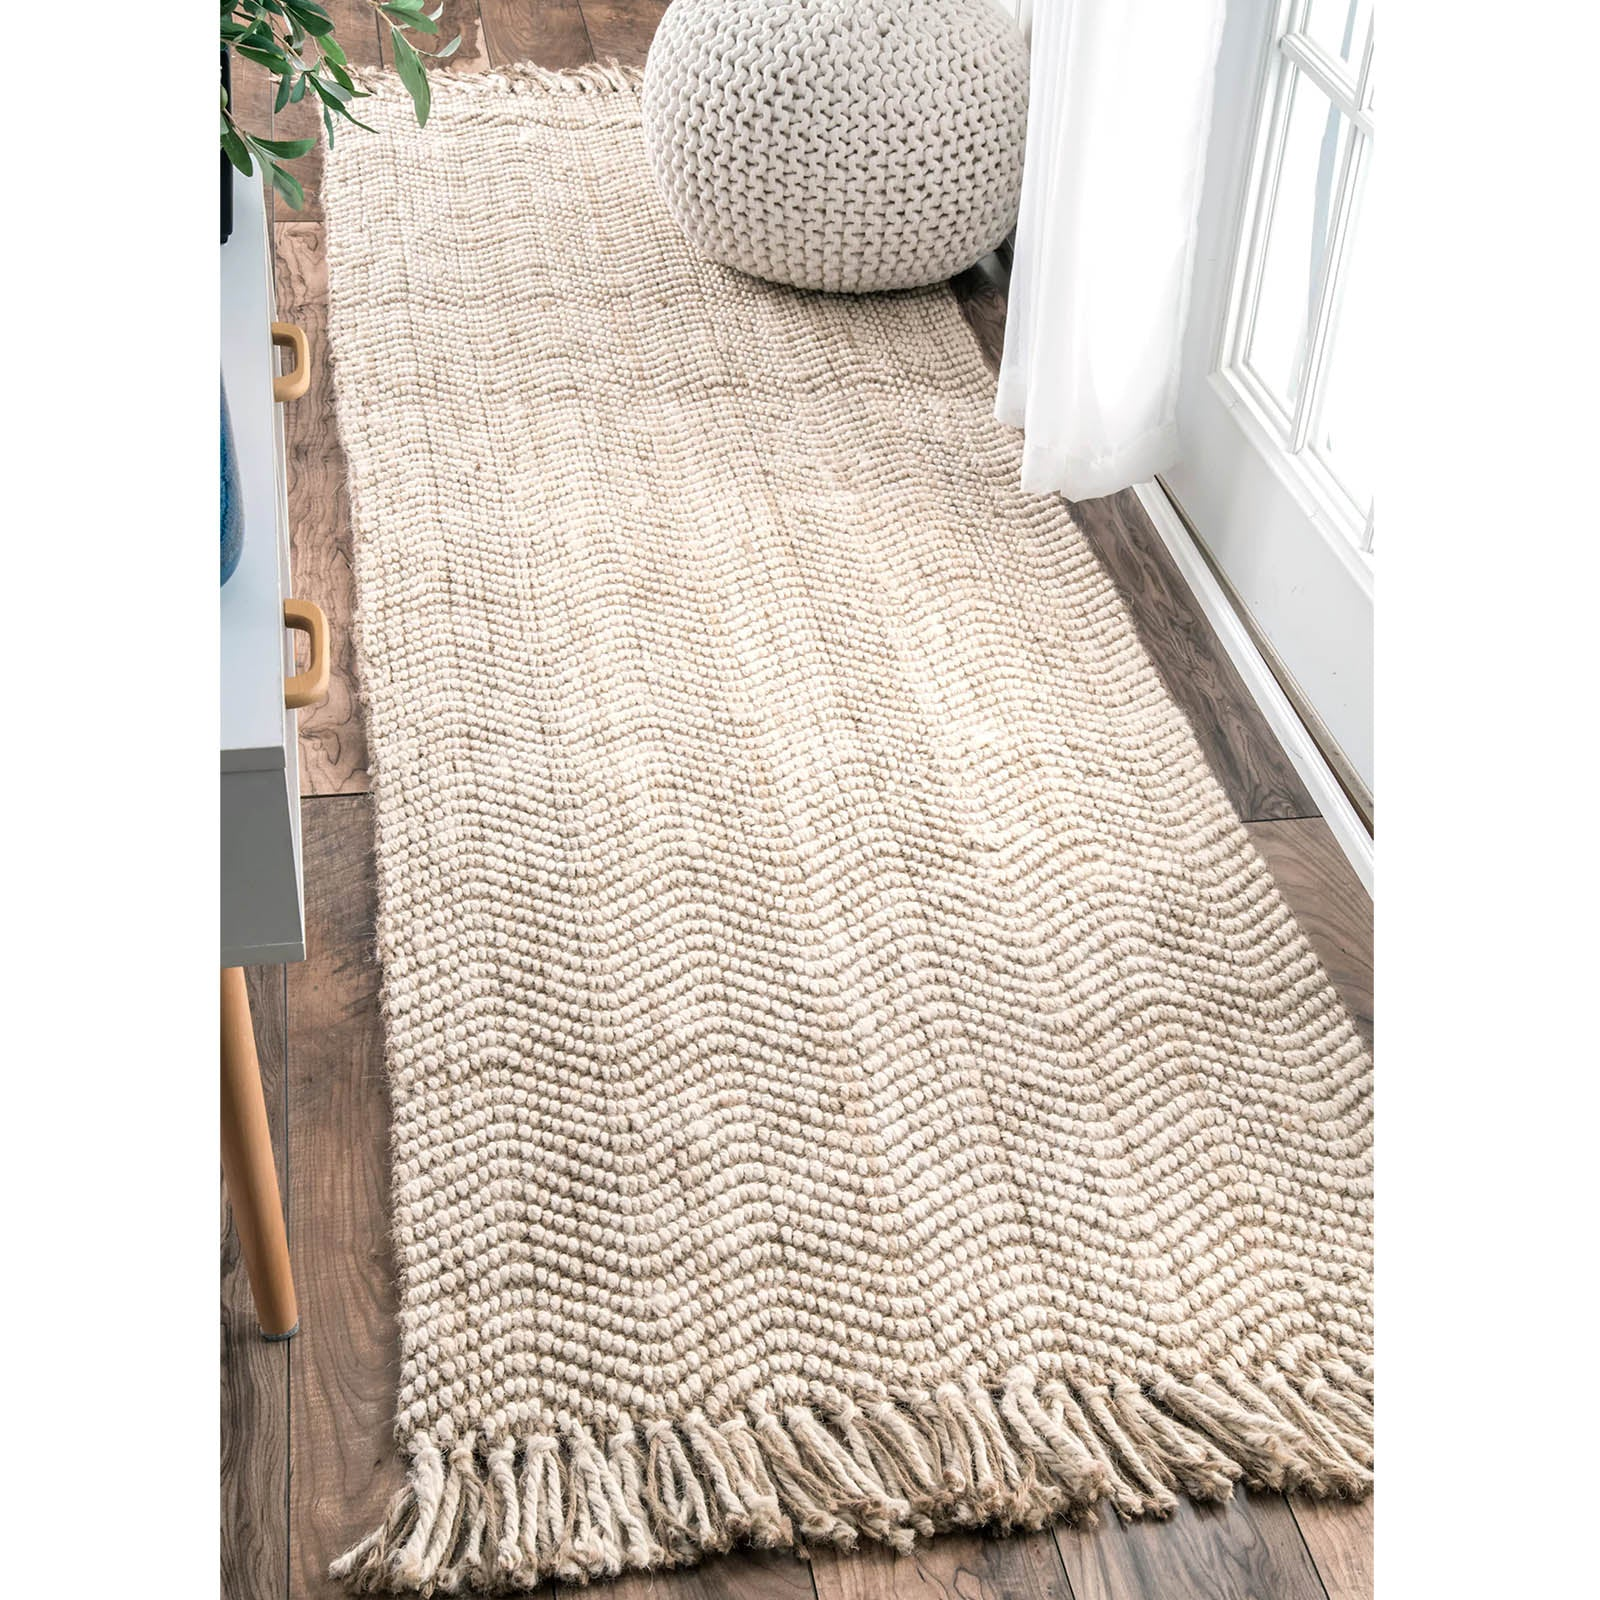 90X300 cm Braided handmade Jute Rug JH-2340-long